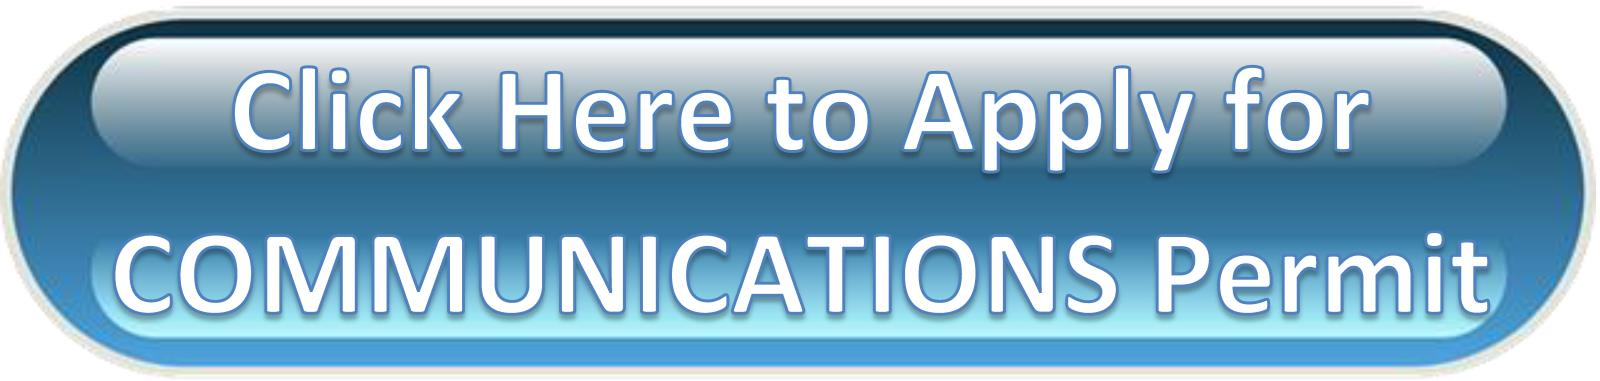 COMMUNICATIONS APPLY BUTTON